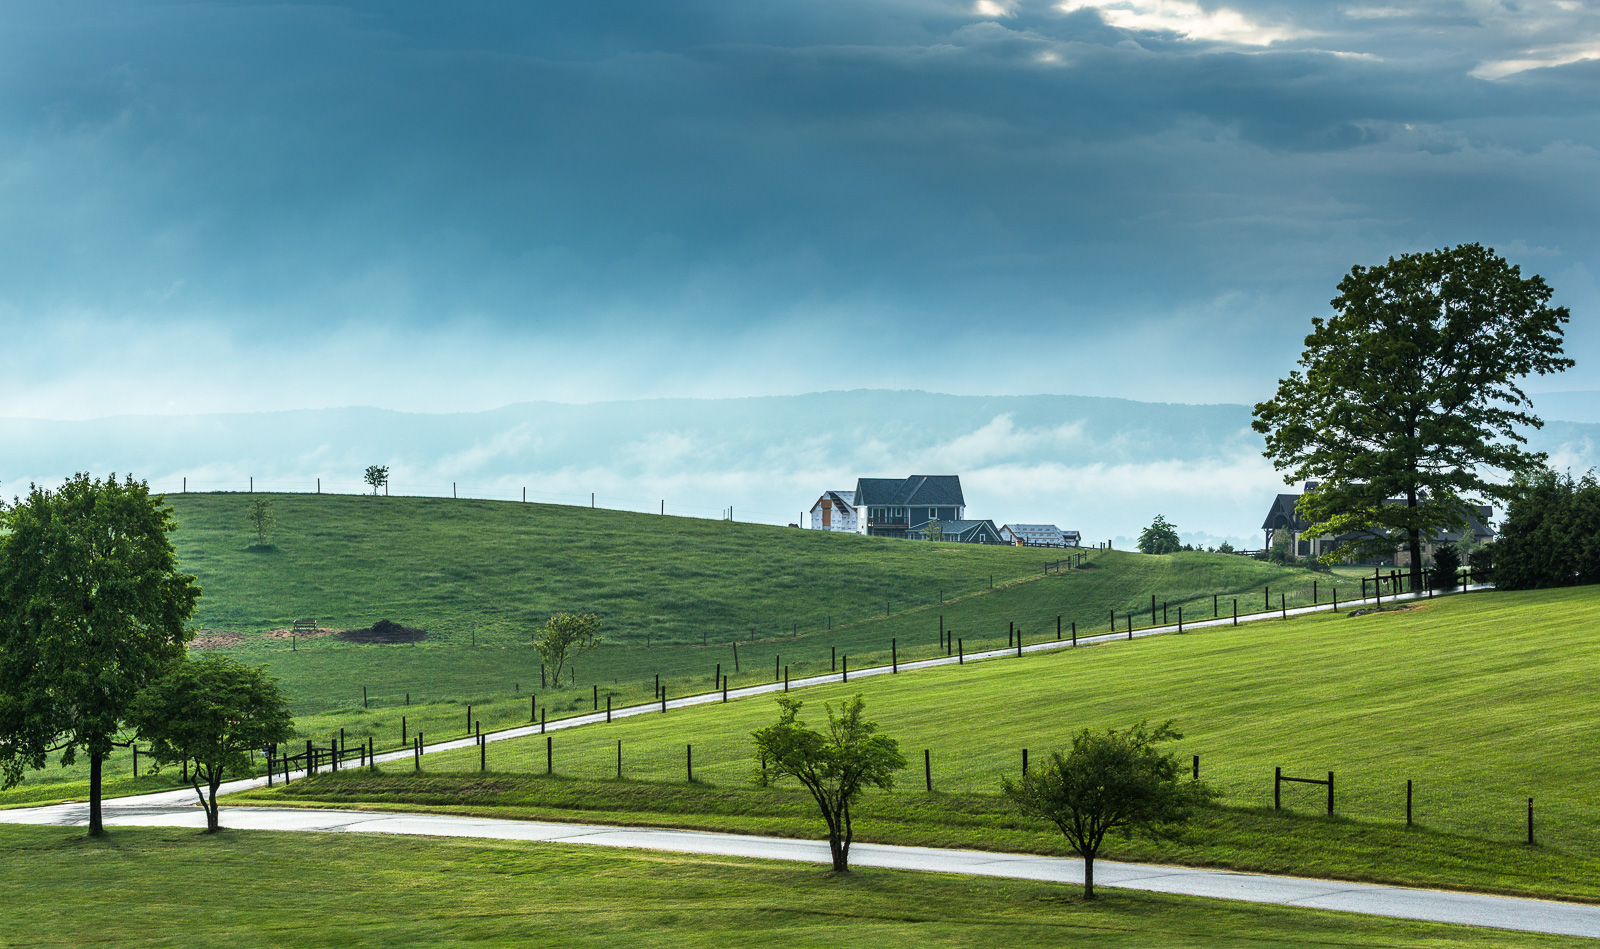 _C8A4262-Pano - Richard Mallory Allnutt photo - Sunset - Blacksburg, VA -May 17, 2015.jpg